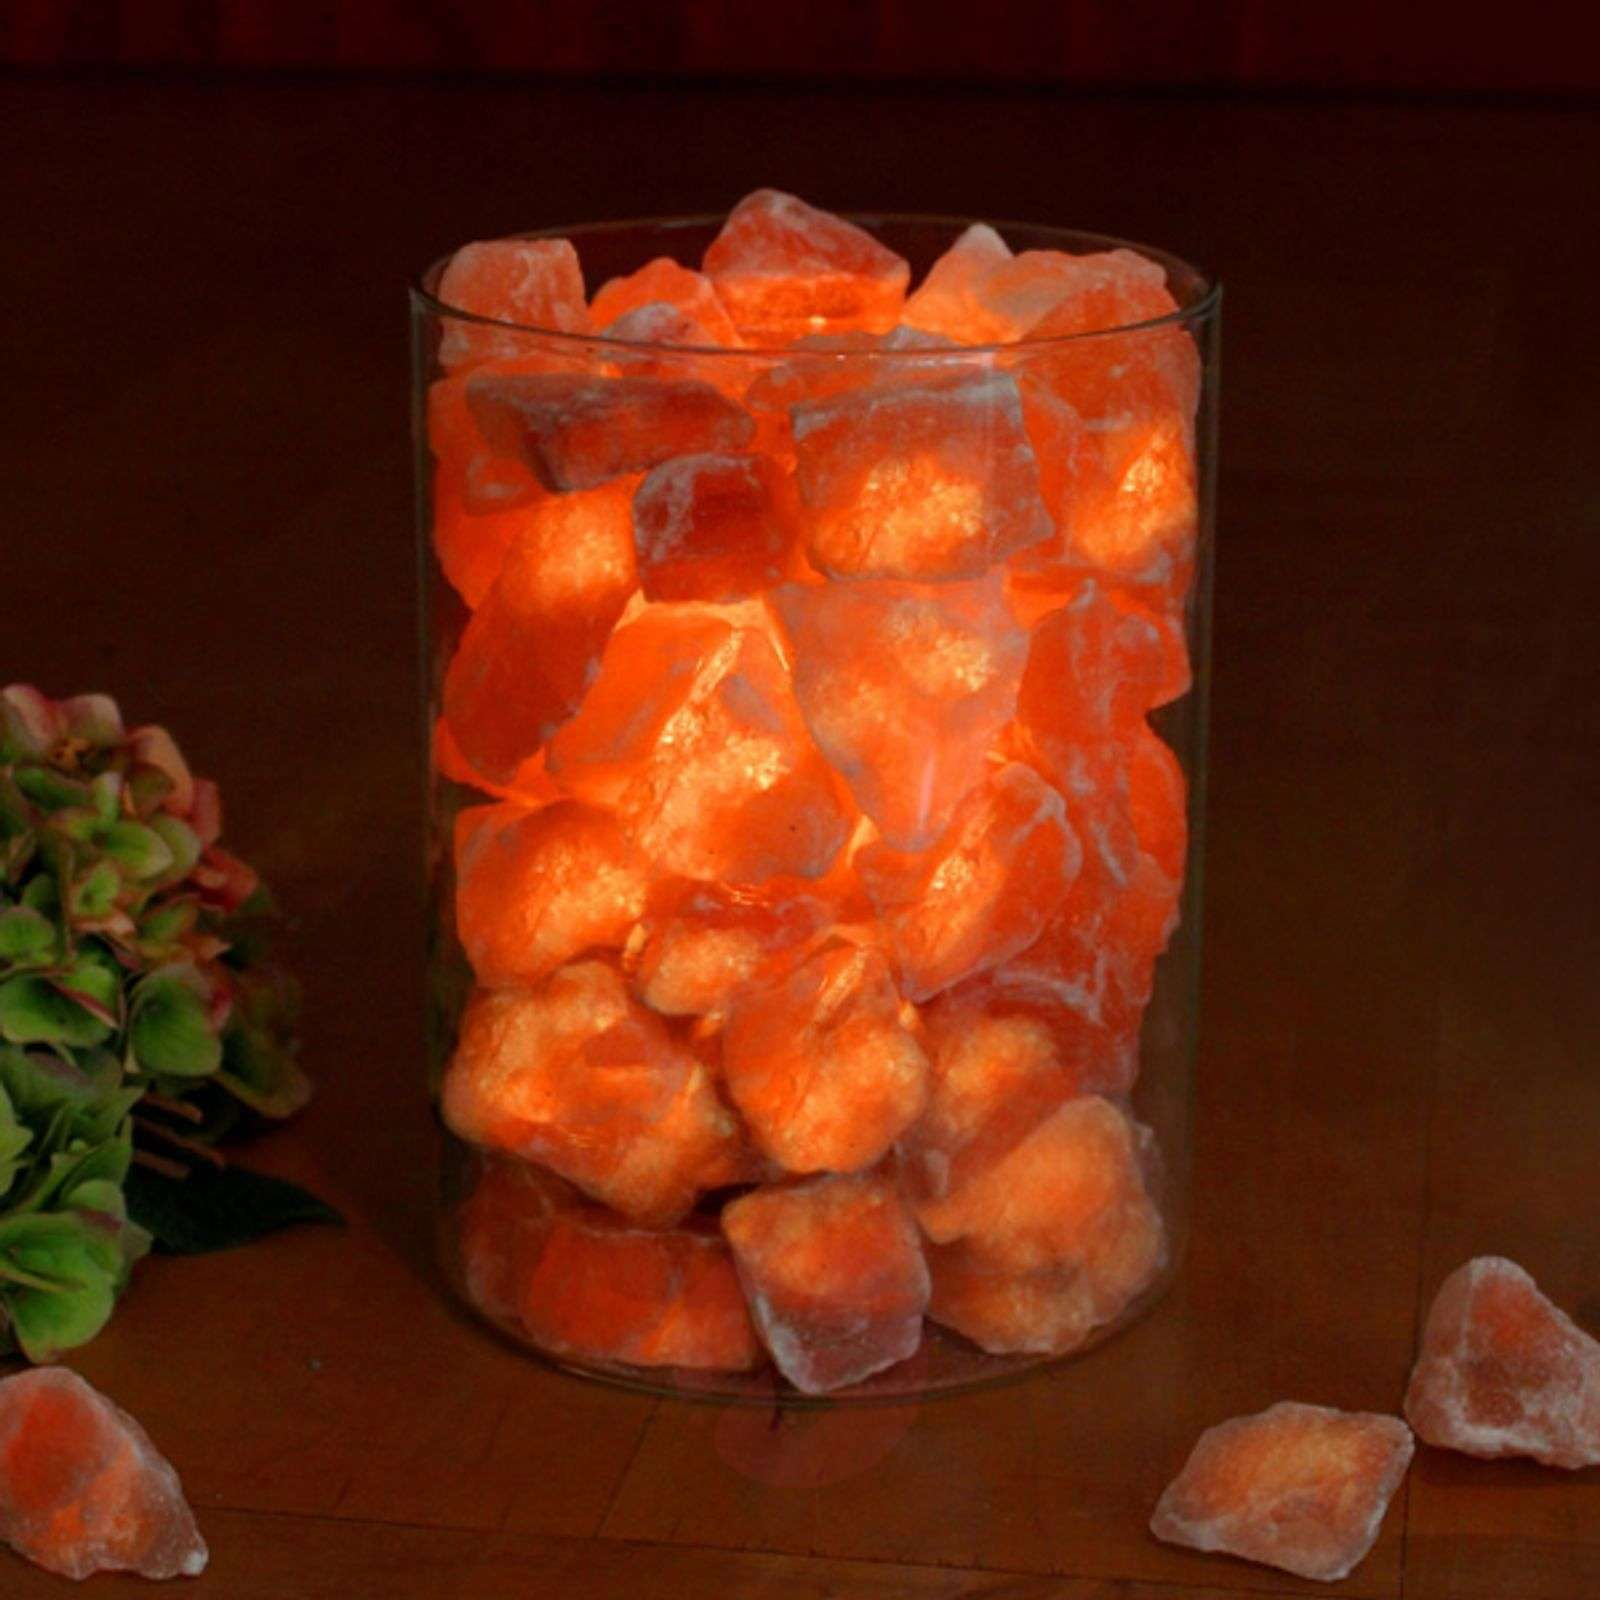 Salt crystal fire in glass-9608055-01